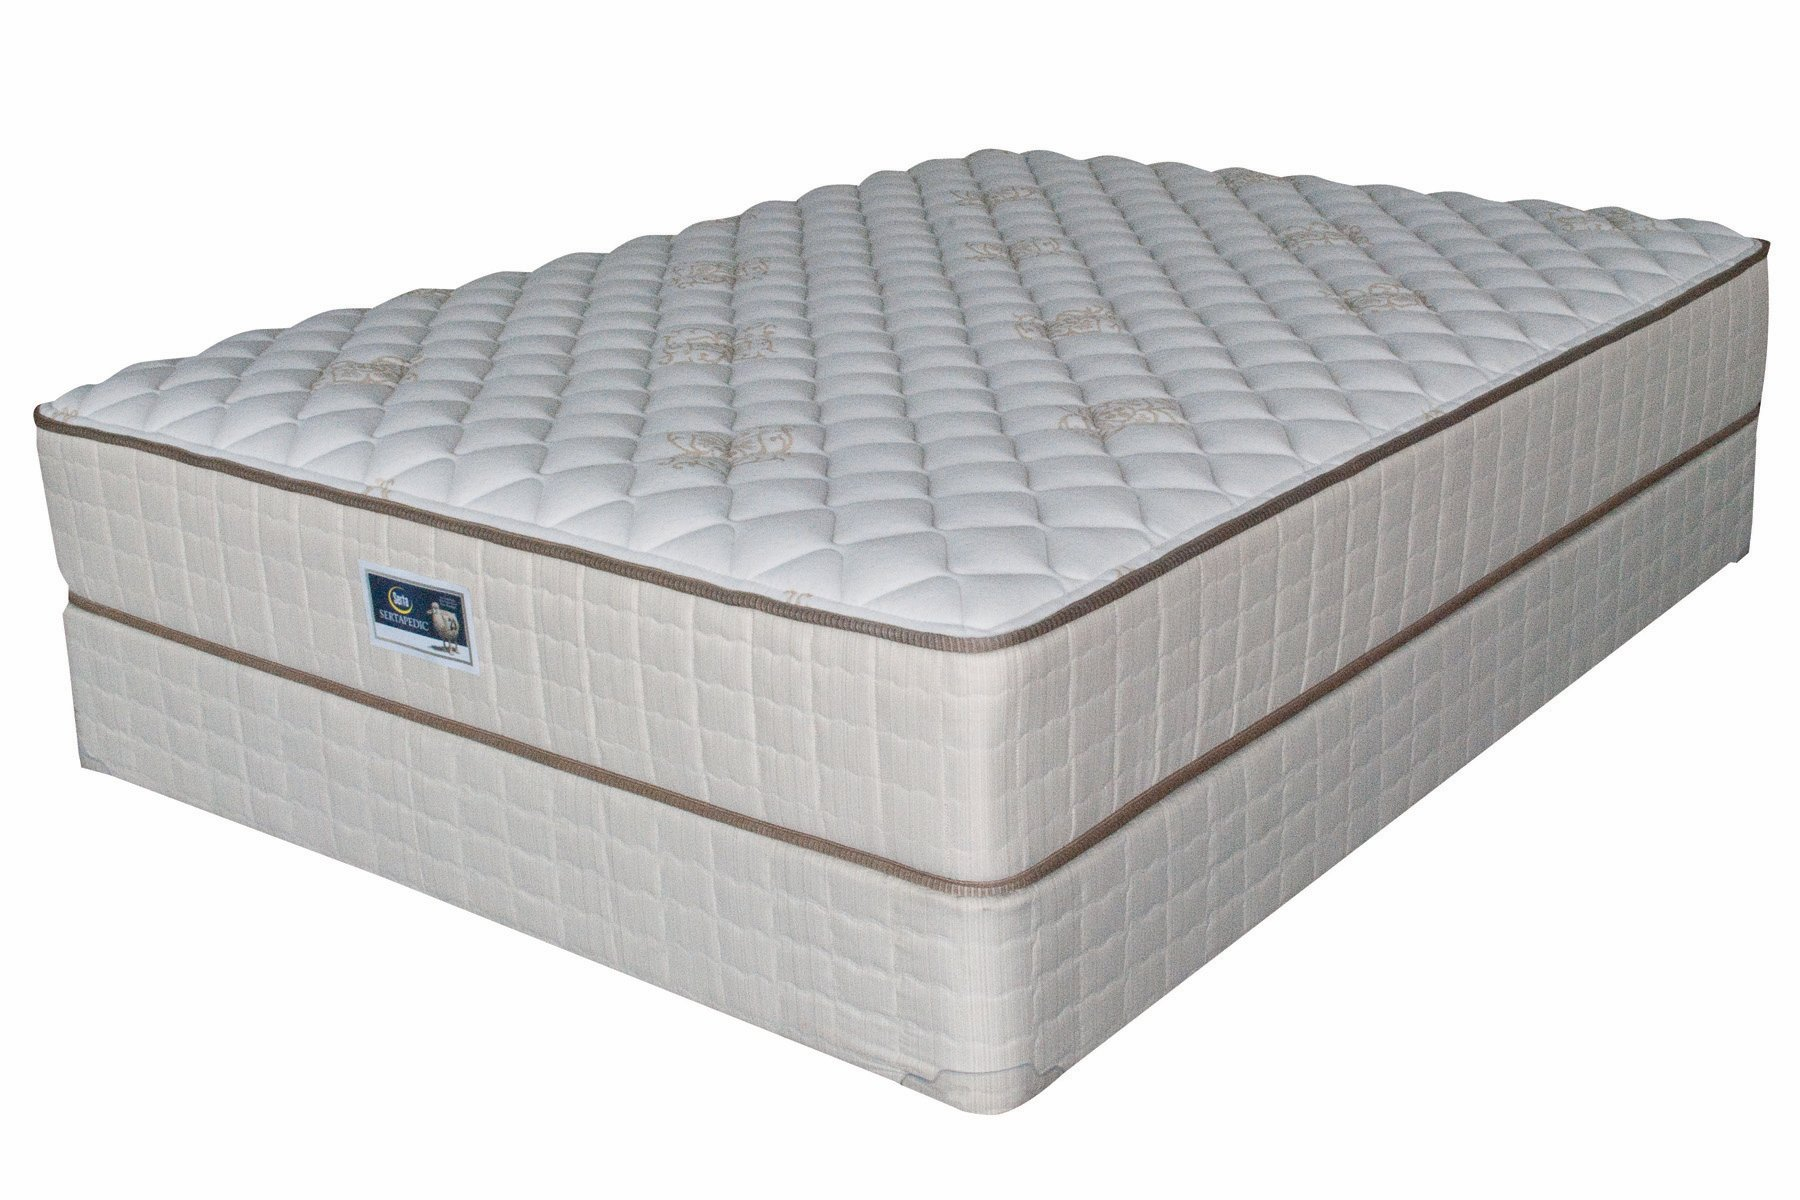 Sertapedic Malta Firm - Mattress Reviews - GoodBed.com